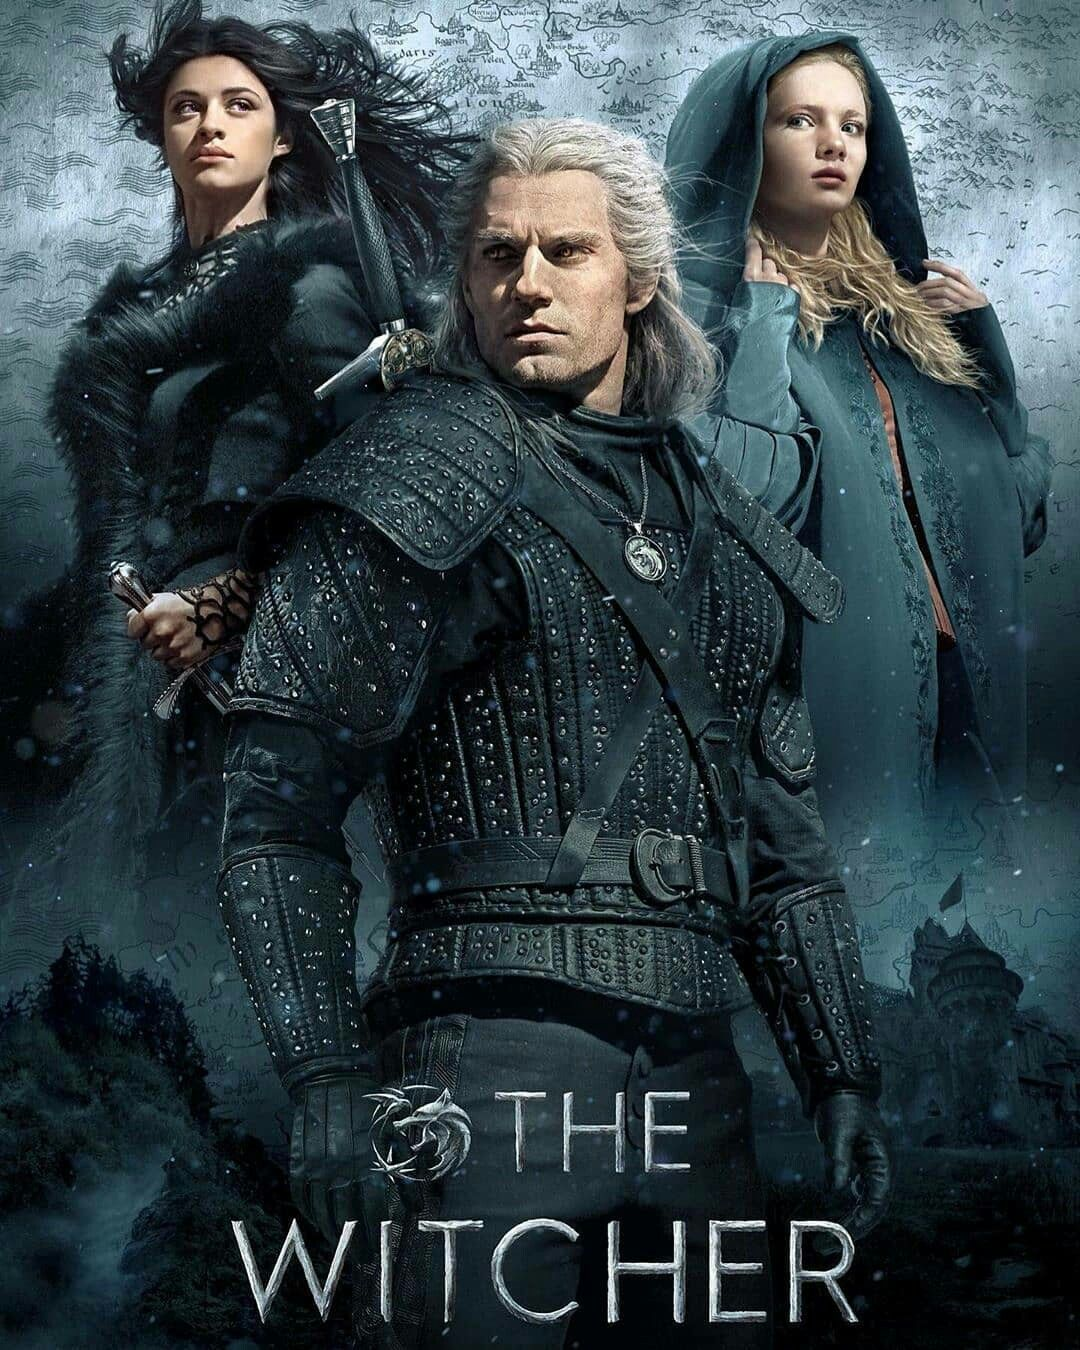 Pin De Kmy B Em The Witcher Filme The Witcher Witcher The